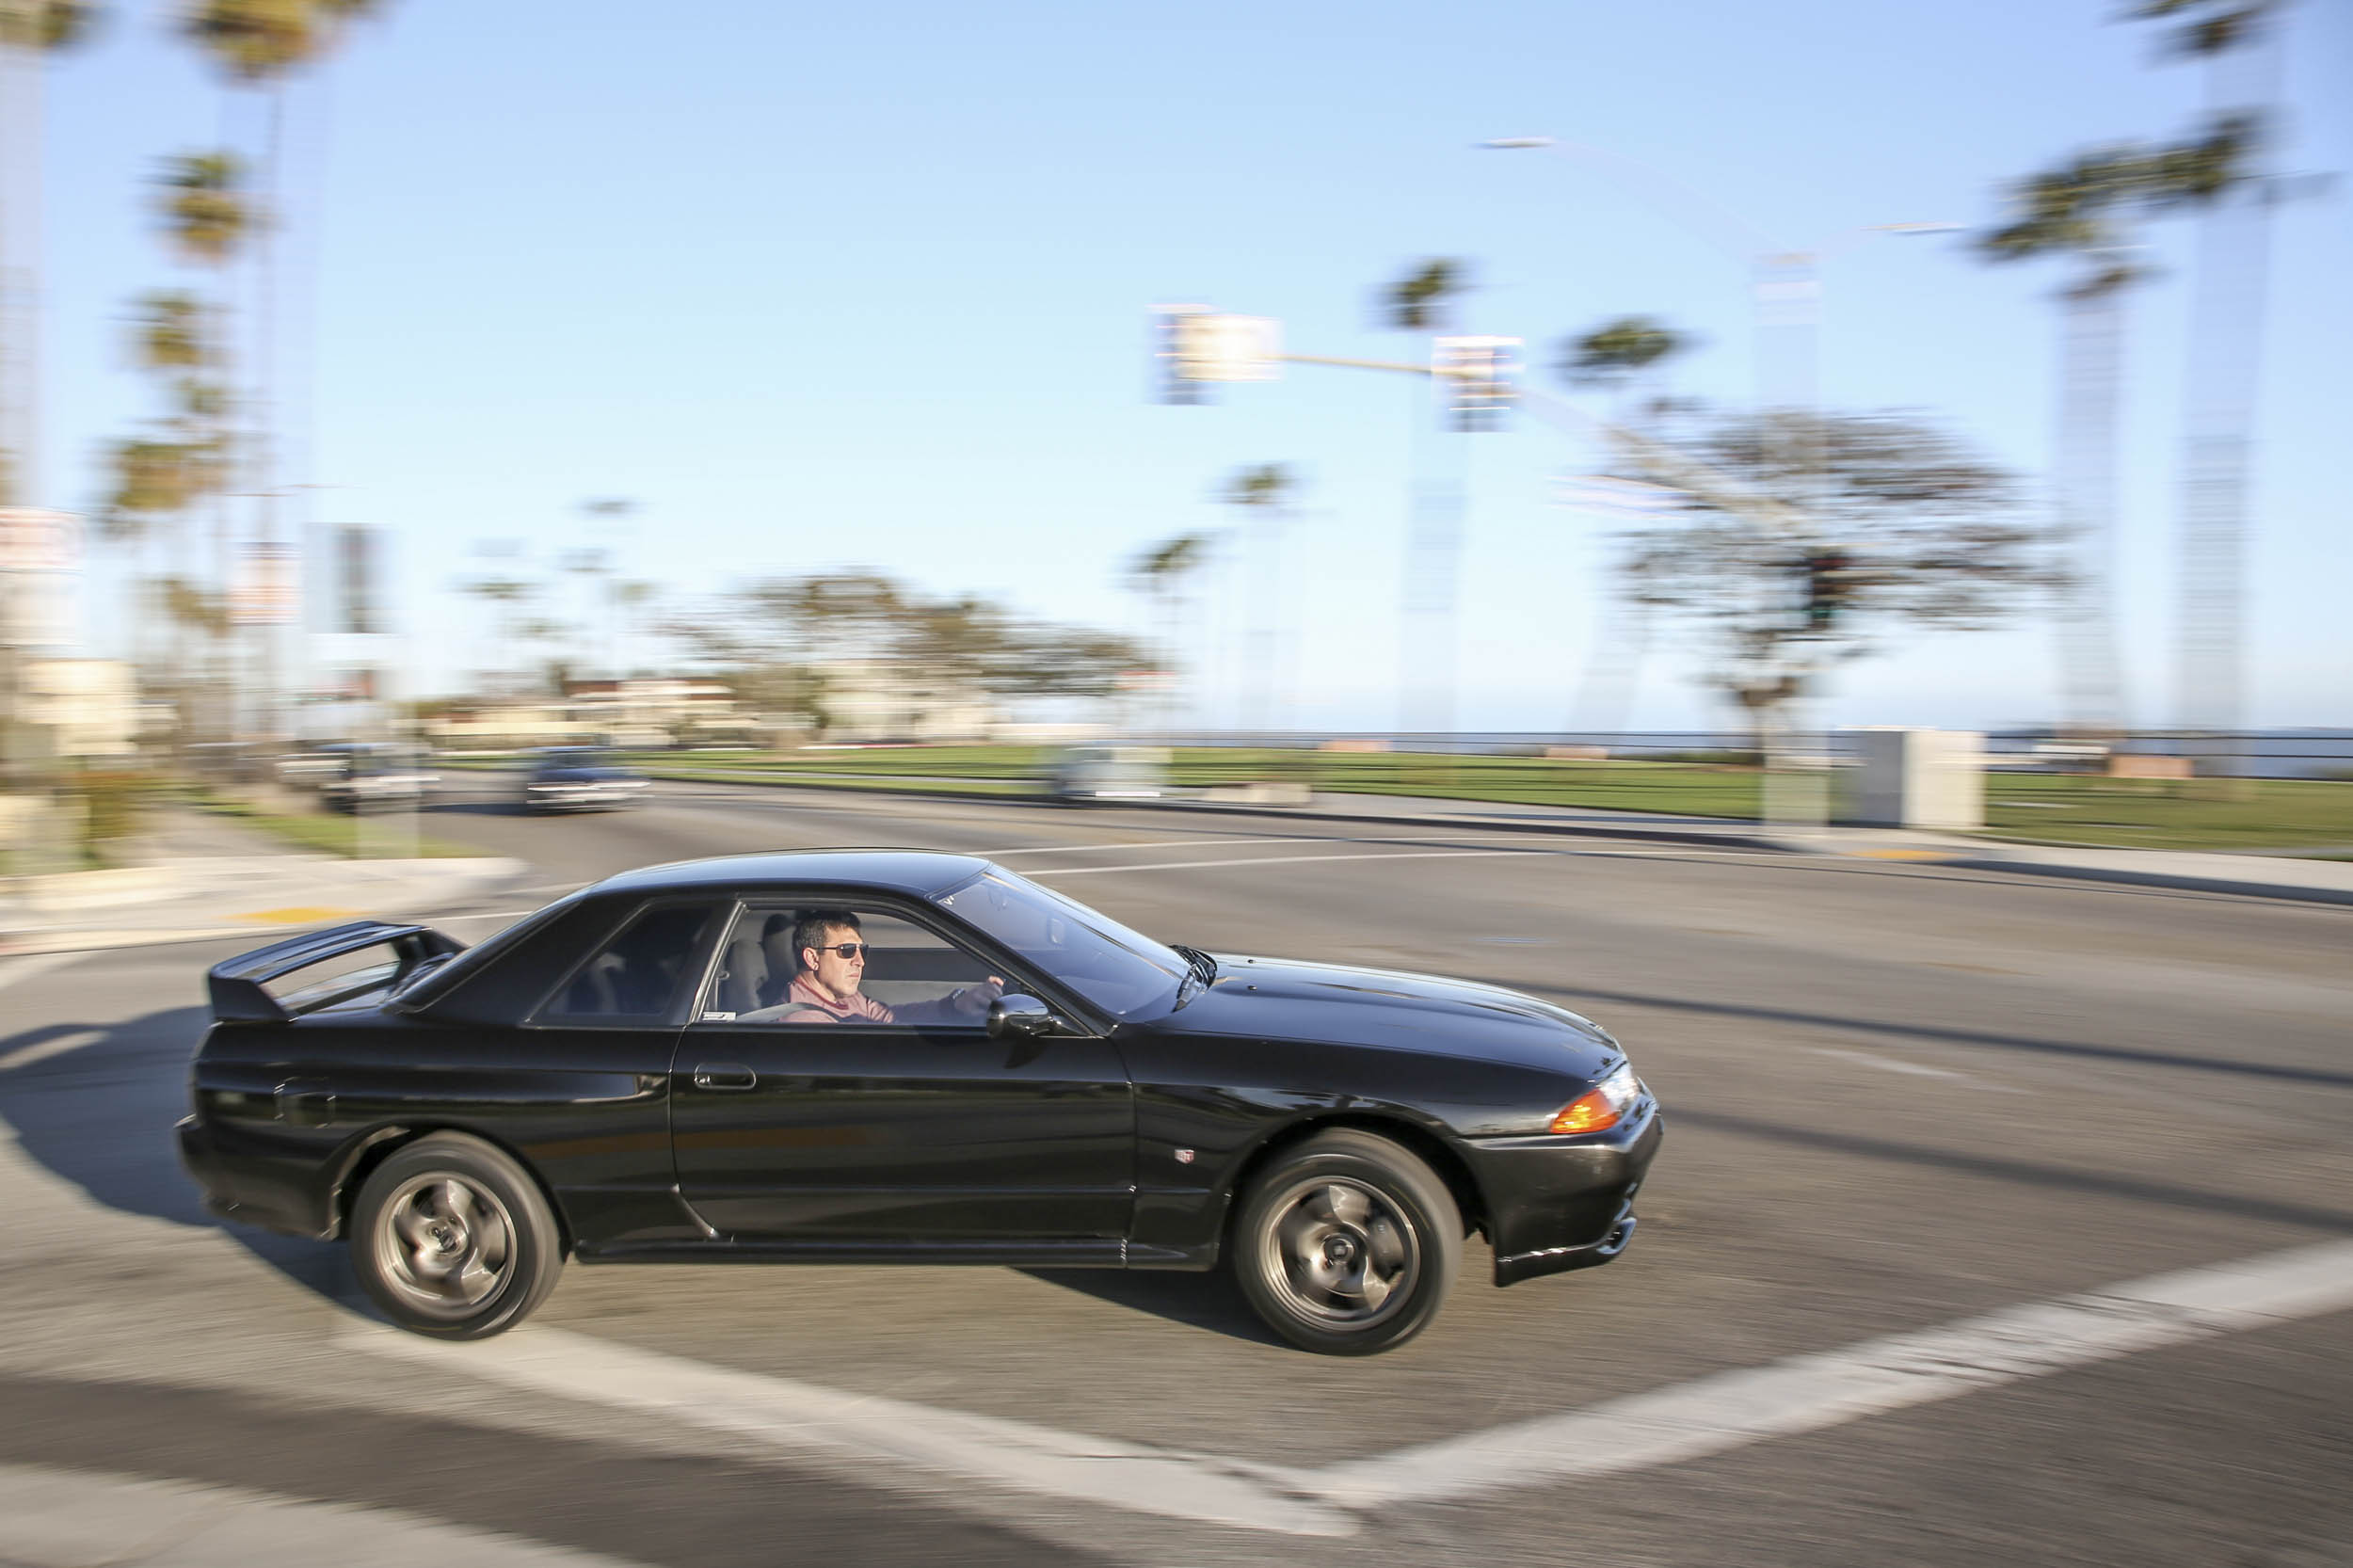 Nissan R32 GT-R turning right